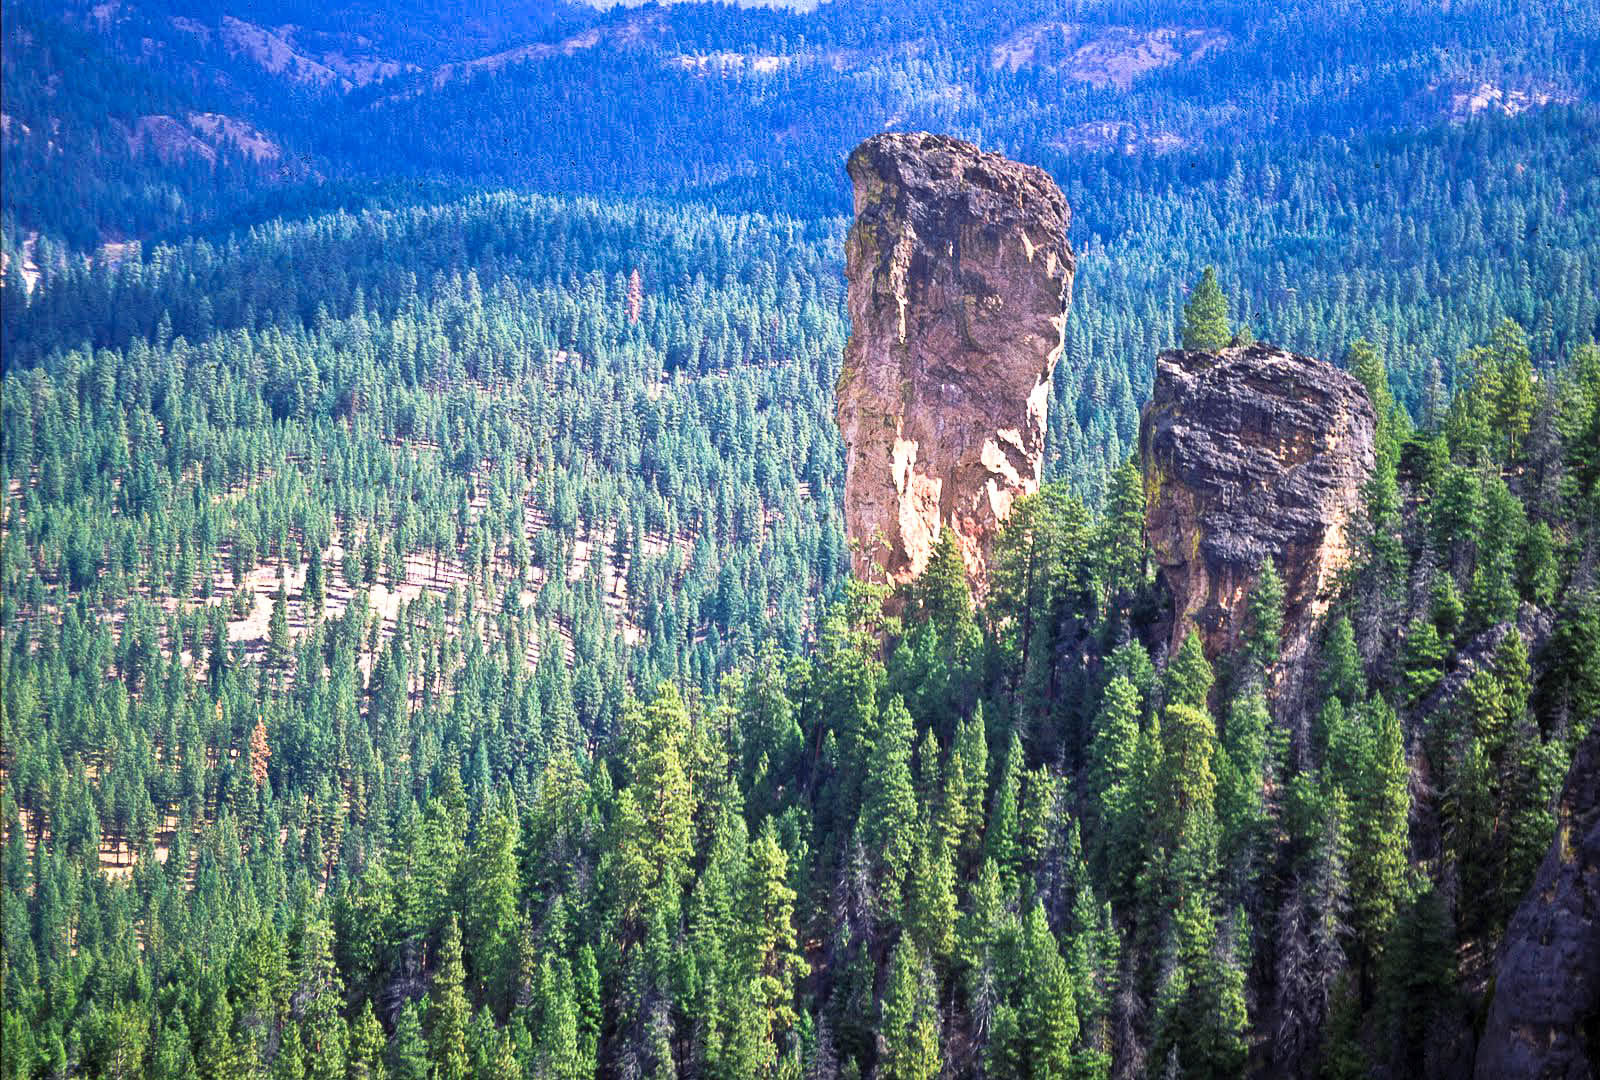 Steins Pillar in the Ochoco National Forest (USDA Forest Service)